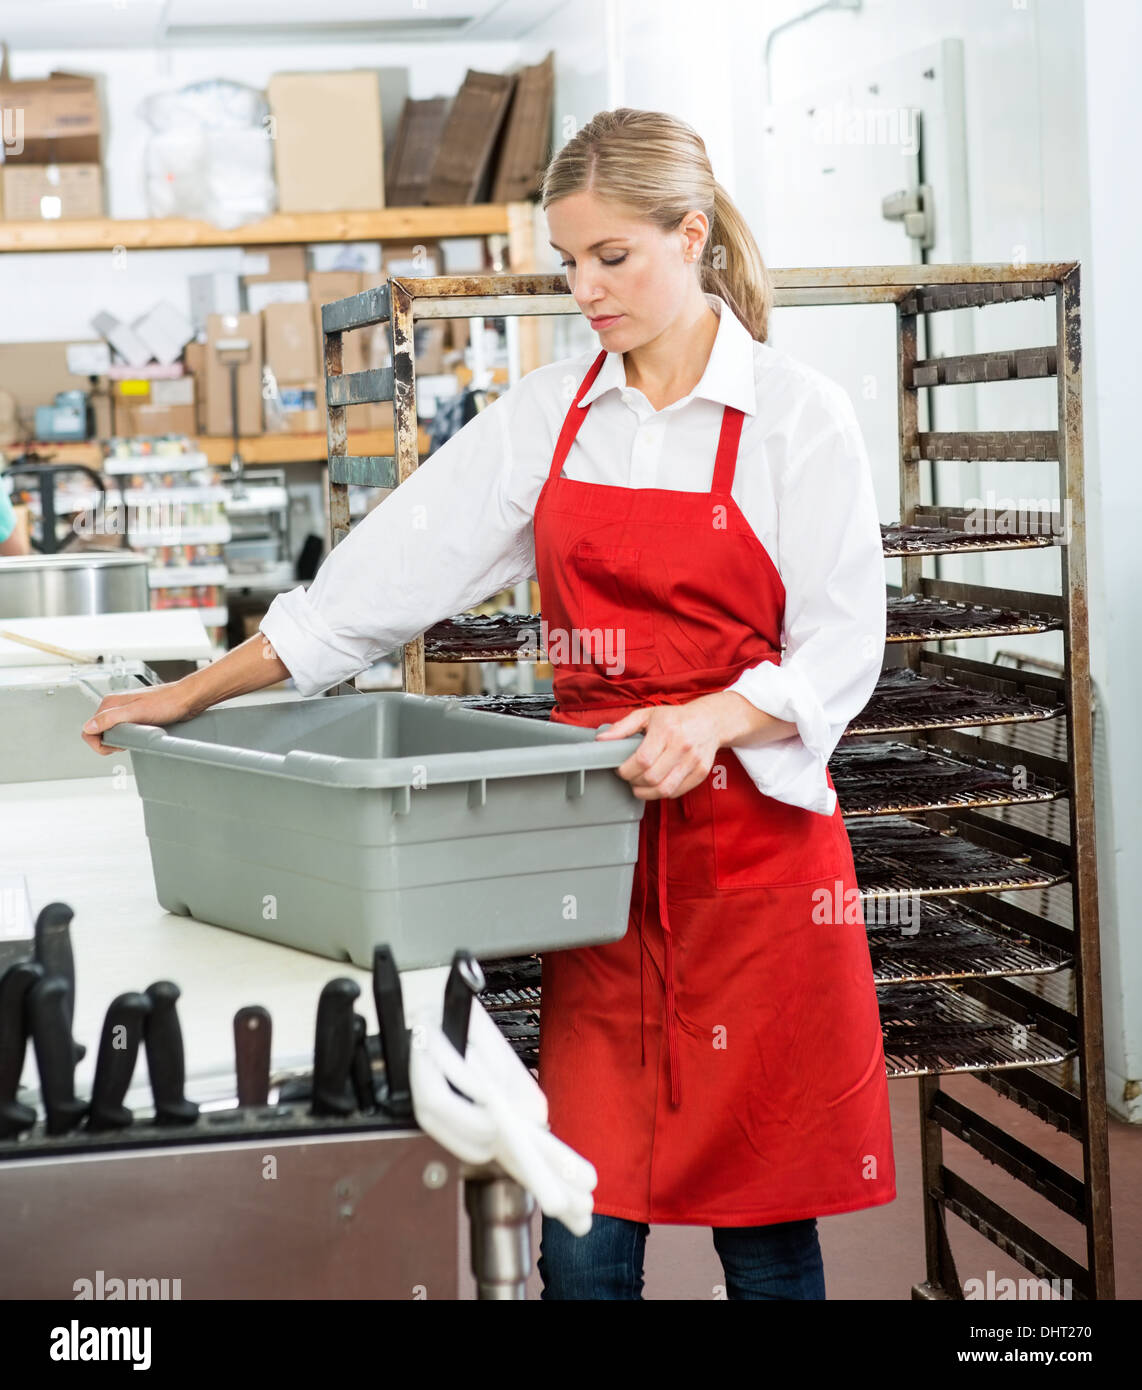 Worker Carrying Basket At Butcher's Shop - Stock Image